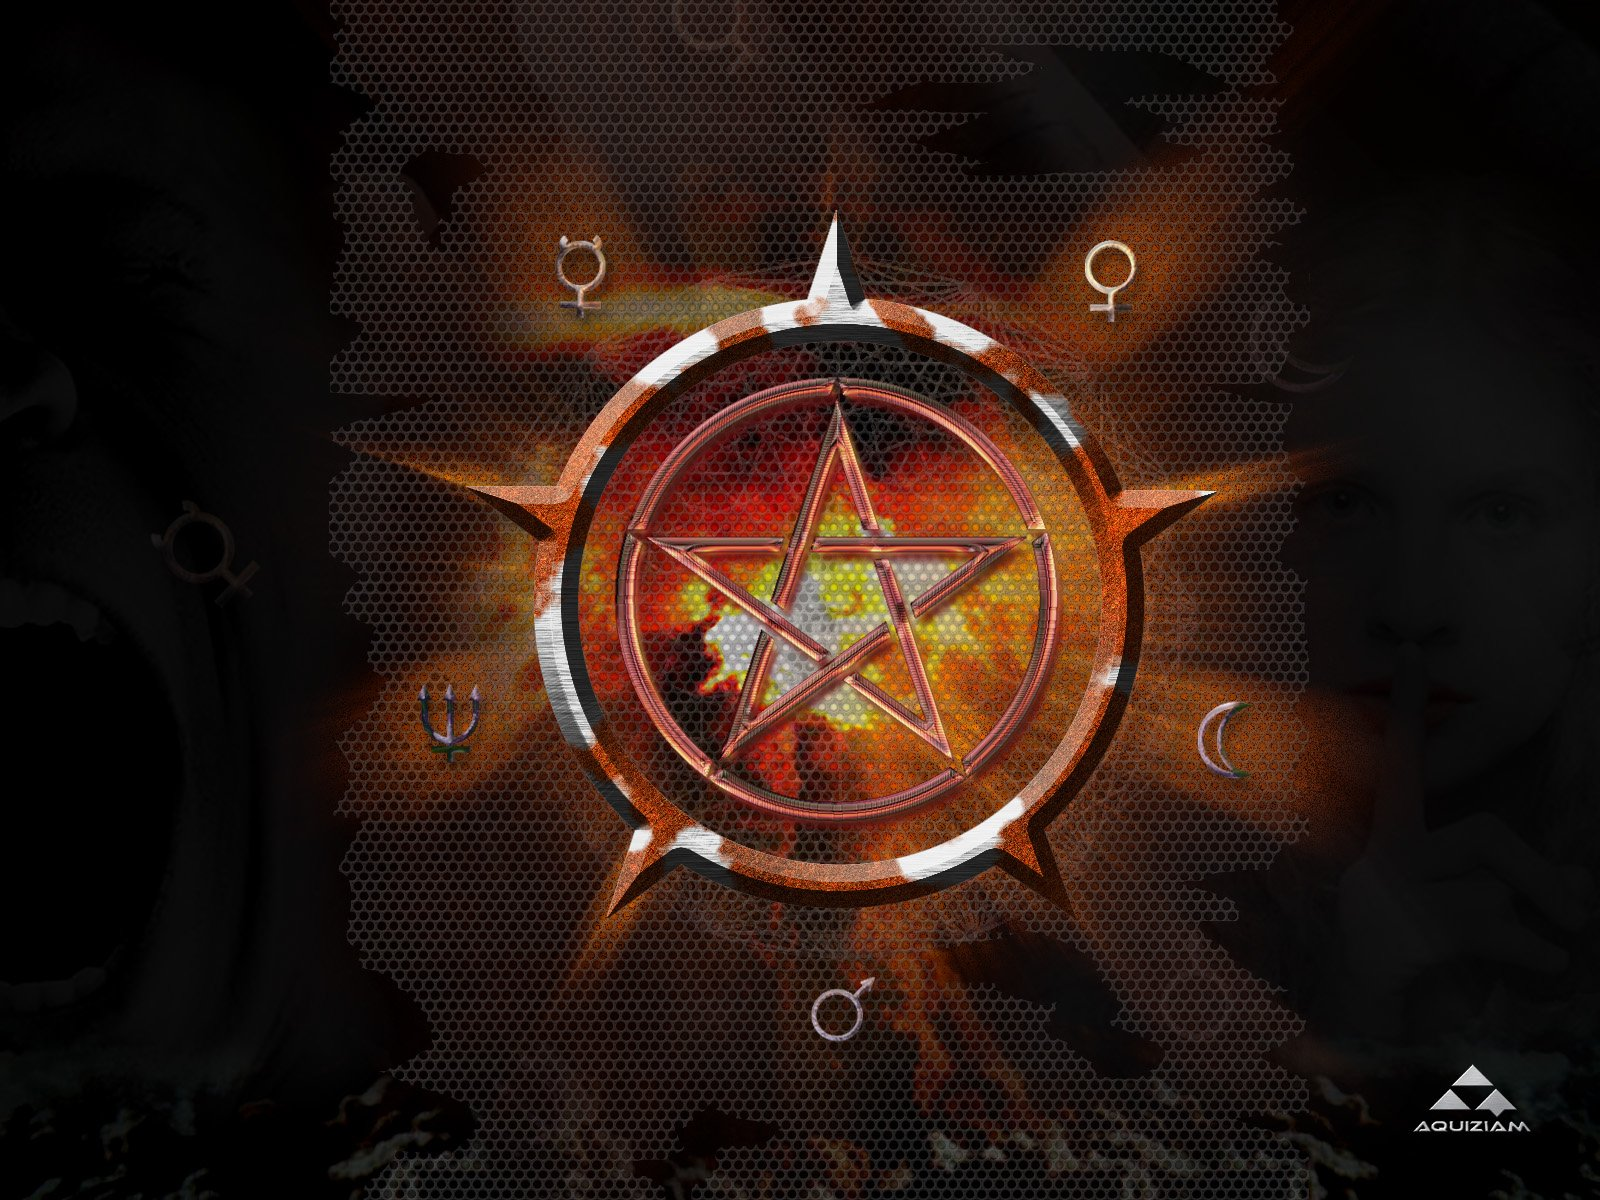 WICCA wiccan witch dark occult fantasy religion wallpaper ...